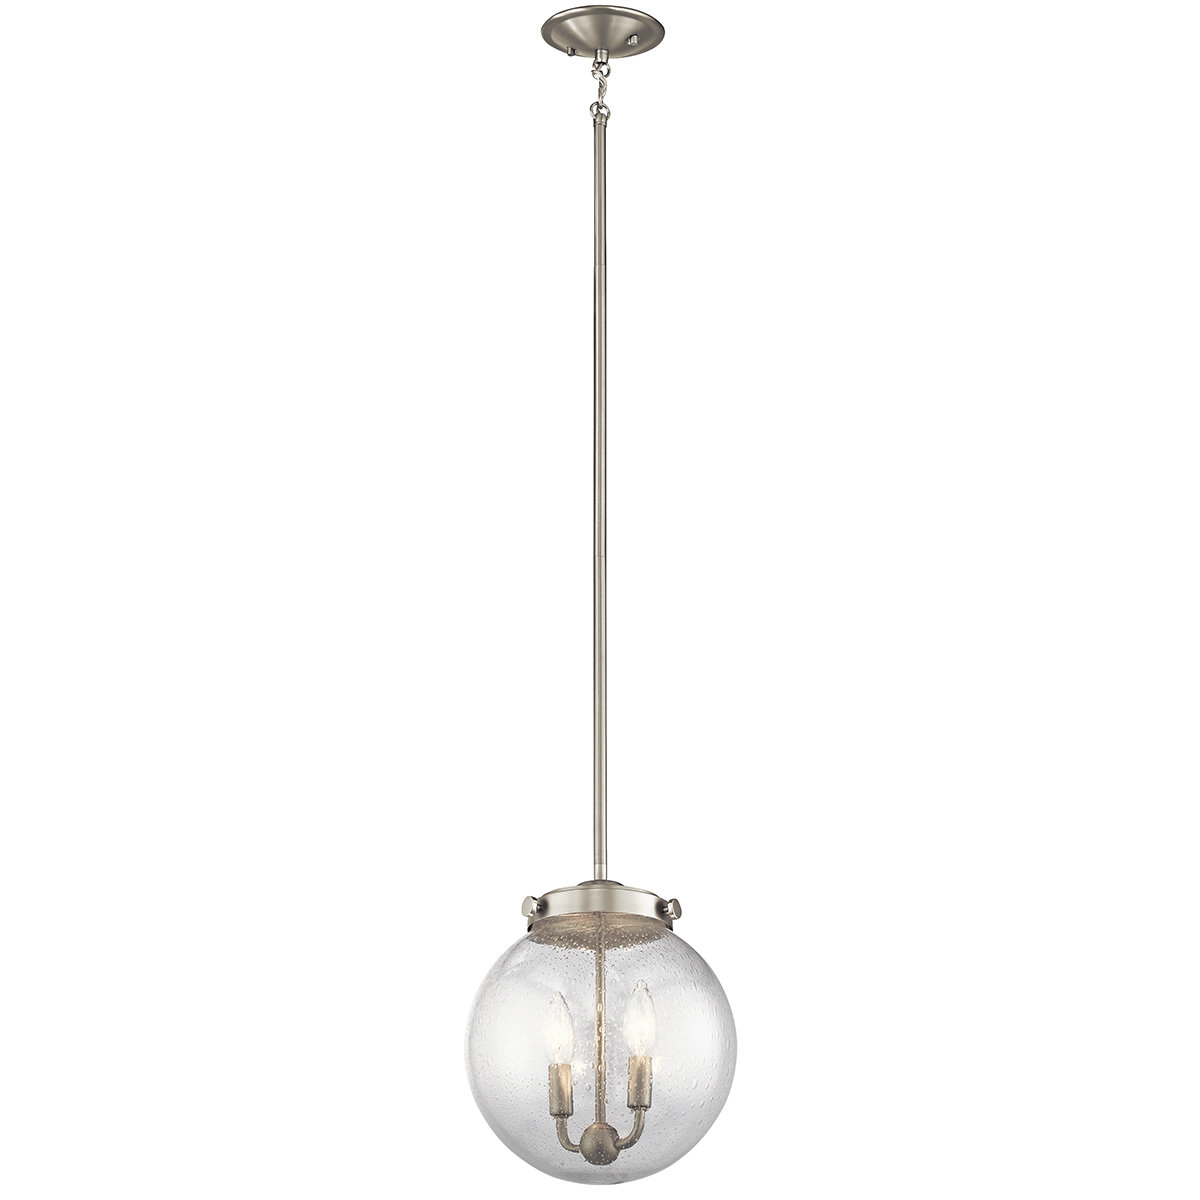 Bundy 1-Light Single Globe Pendants intended for Recent Adamell 1-Light Single Globe Pendant